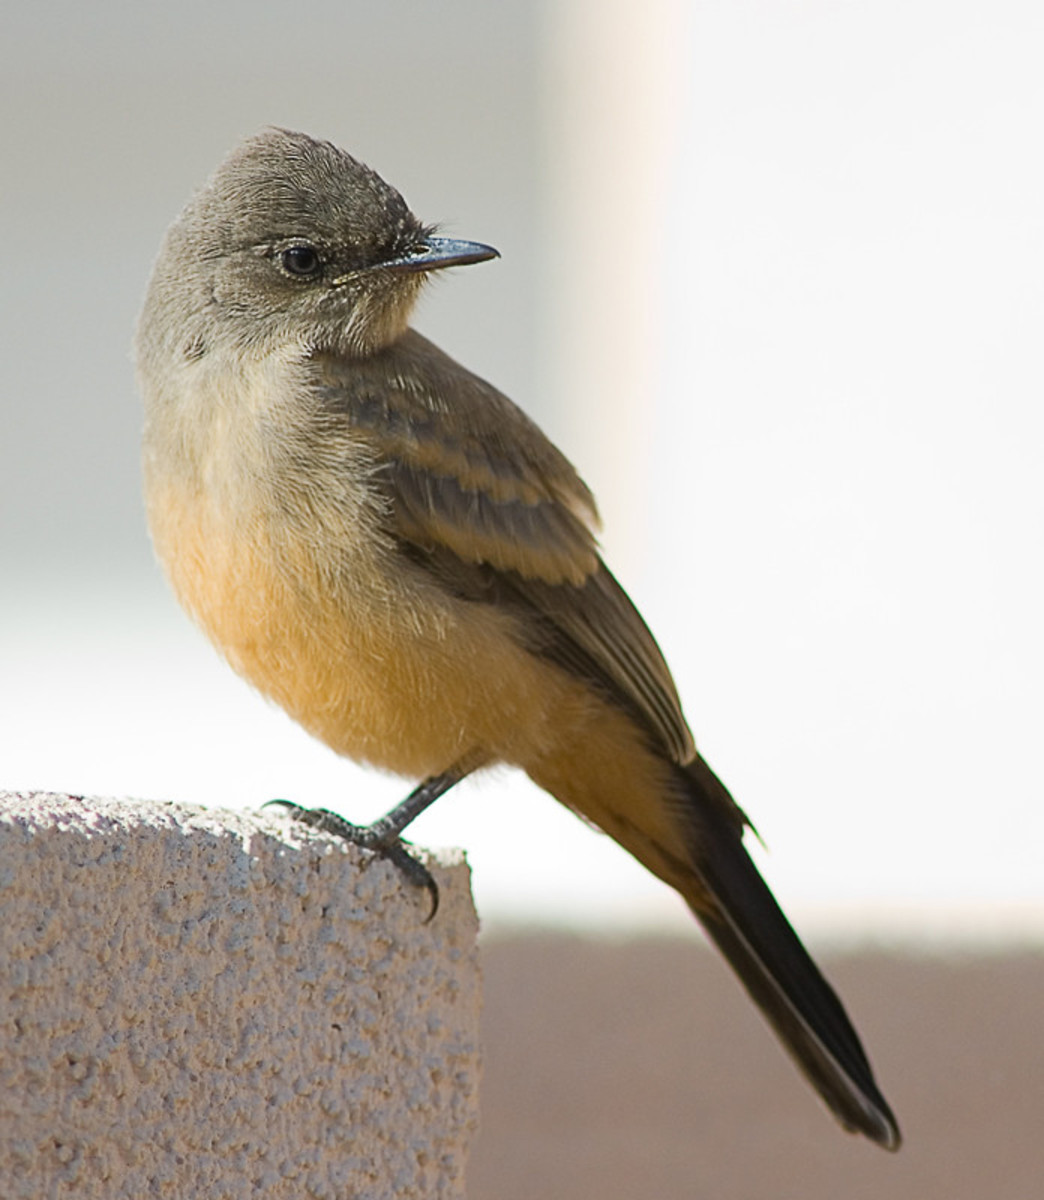 This is a juvenile Say's Phoebe; note the tawny wing bars that distinguish it from the adult birds.